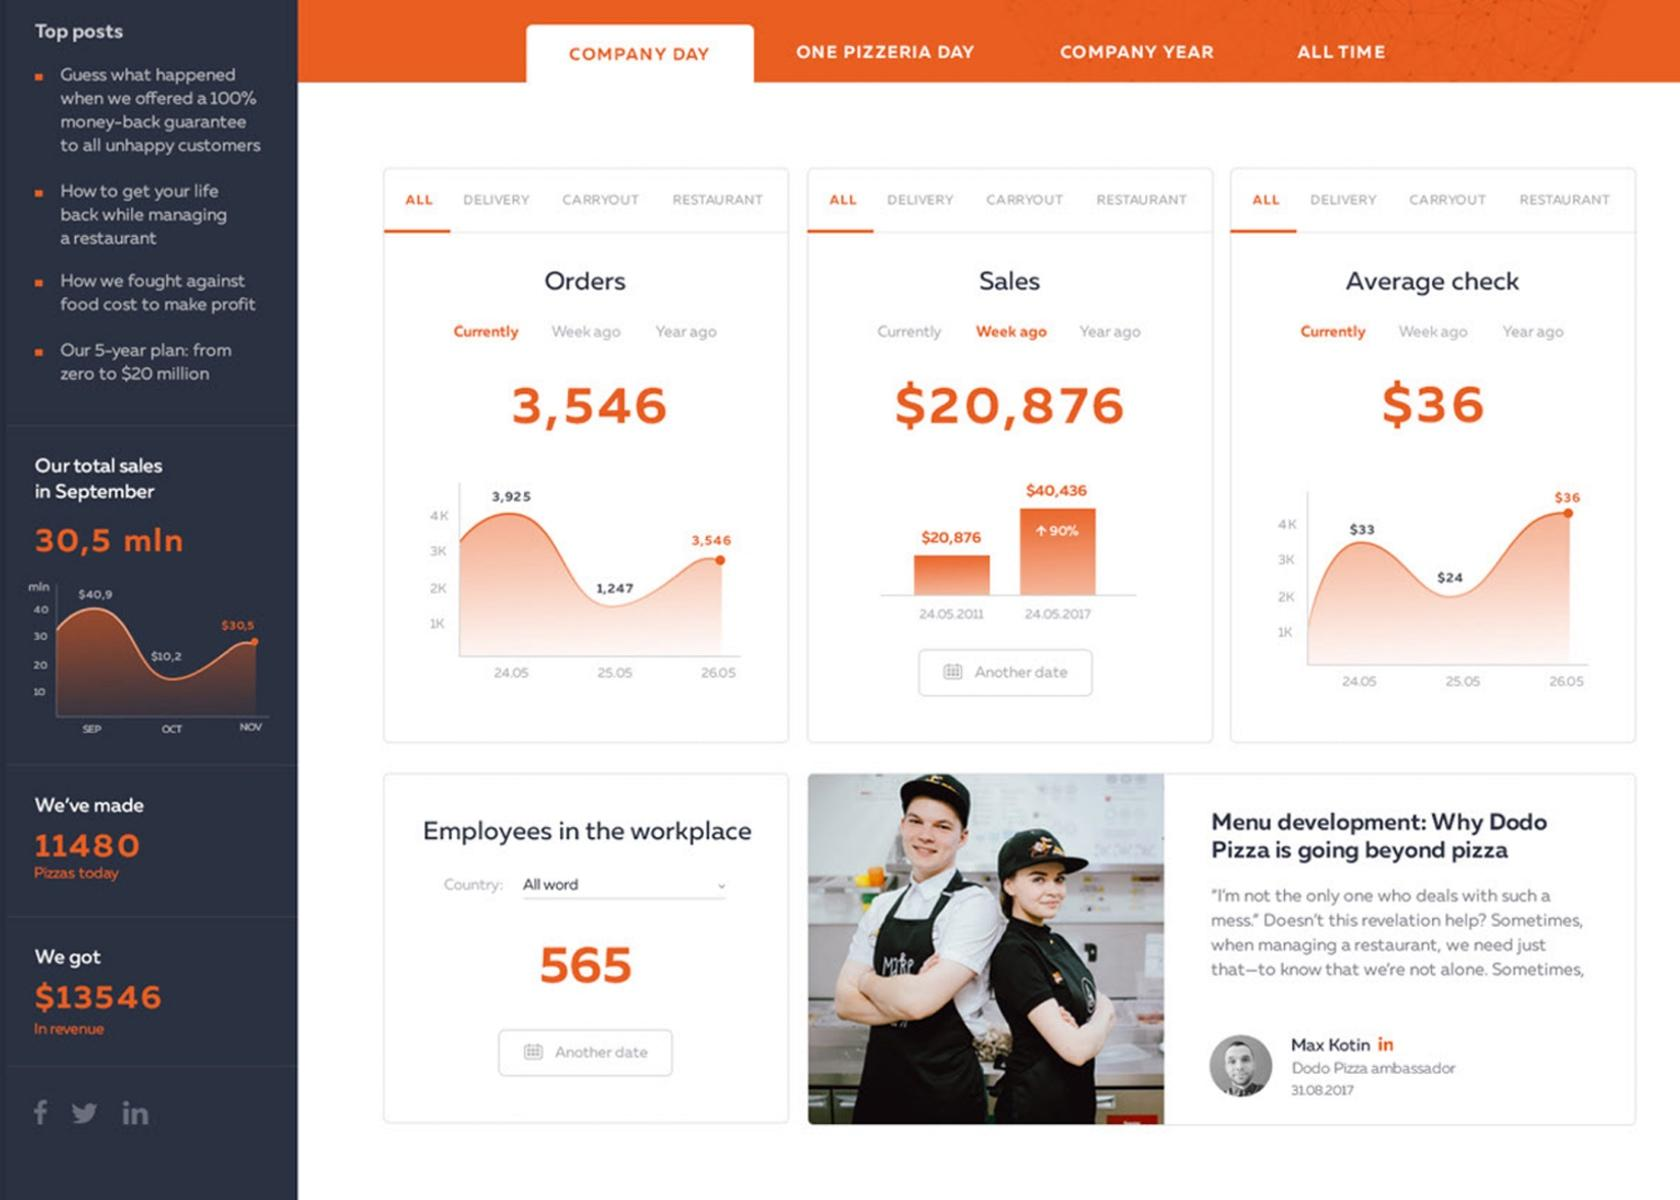 A dashboard design best practice is to use color to enhance the meaning of the information.